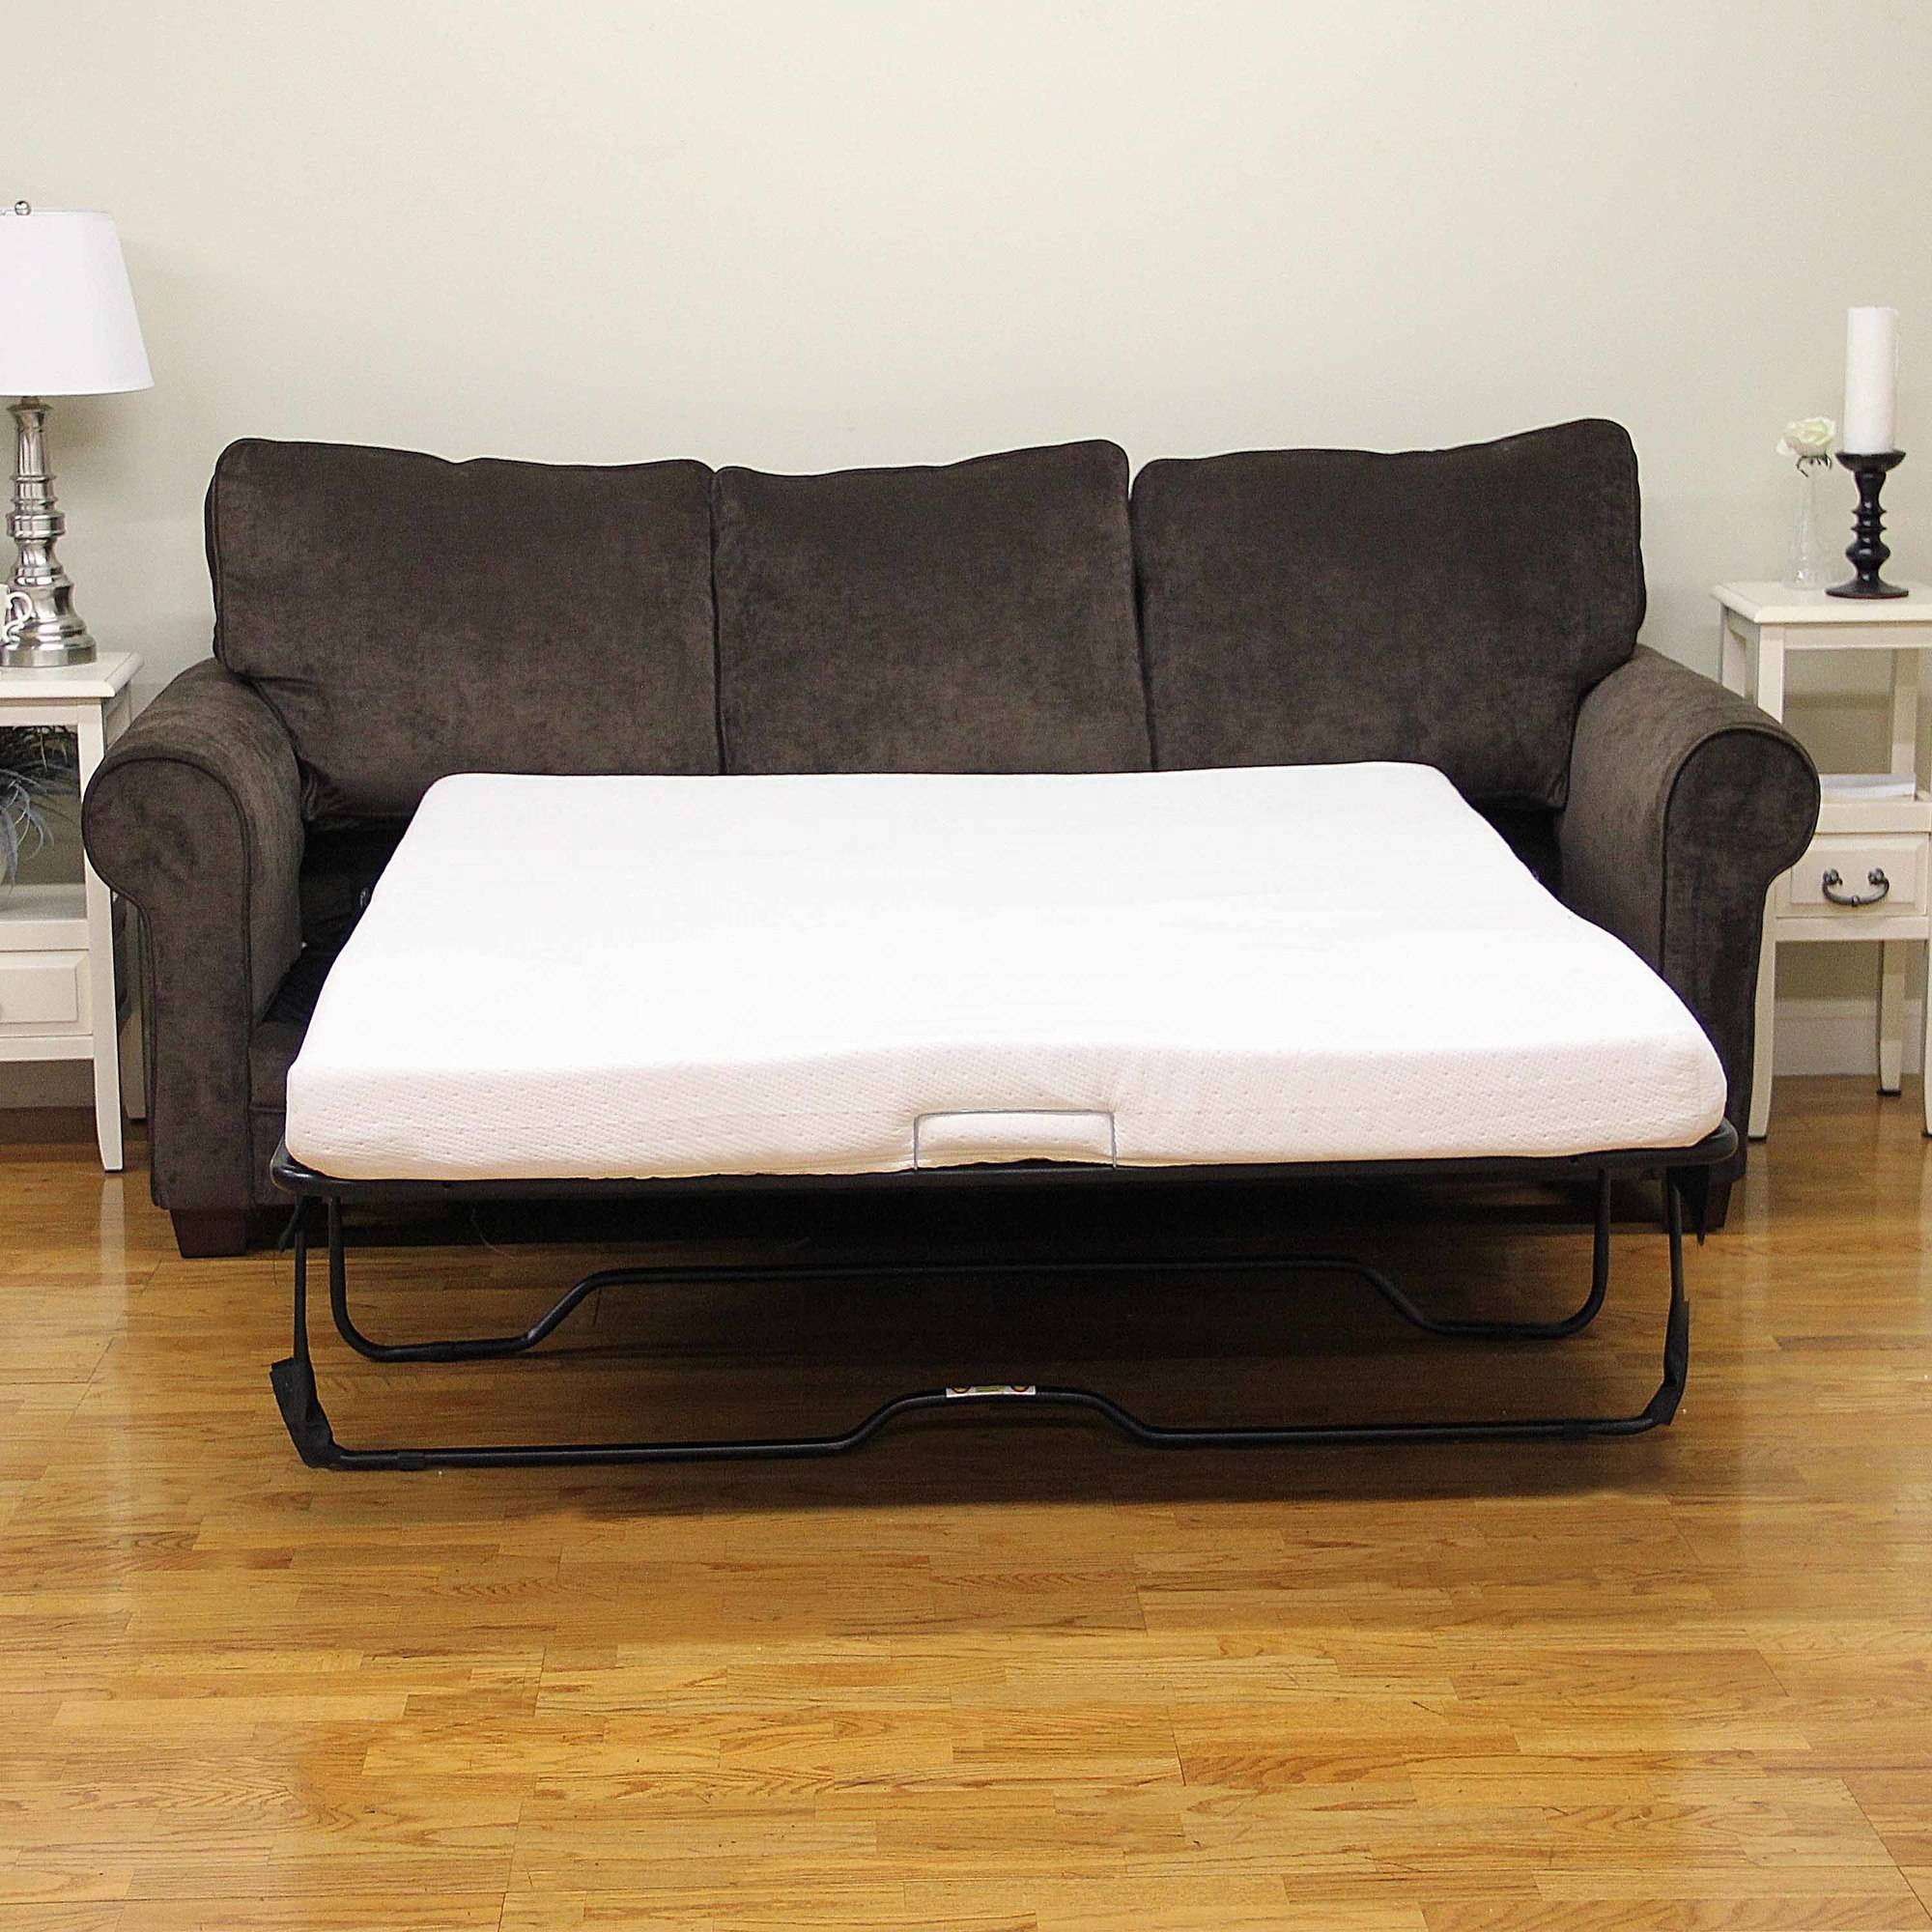 "Modern Sleep Memory Foam 4 5"" Sofa Bed Mattress Multiple Sizes"